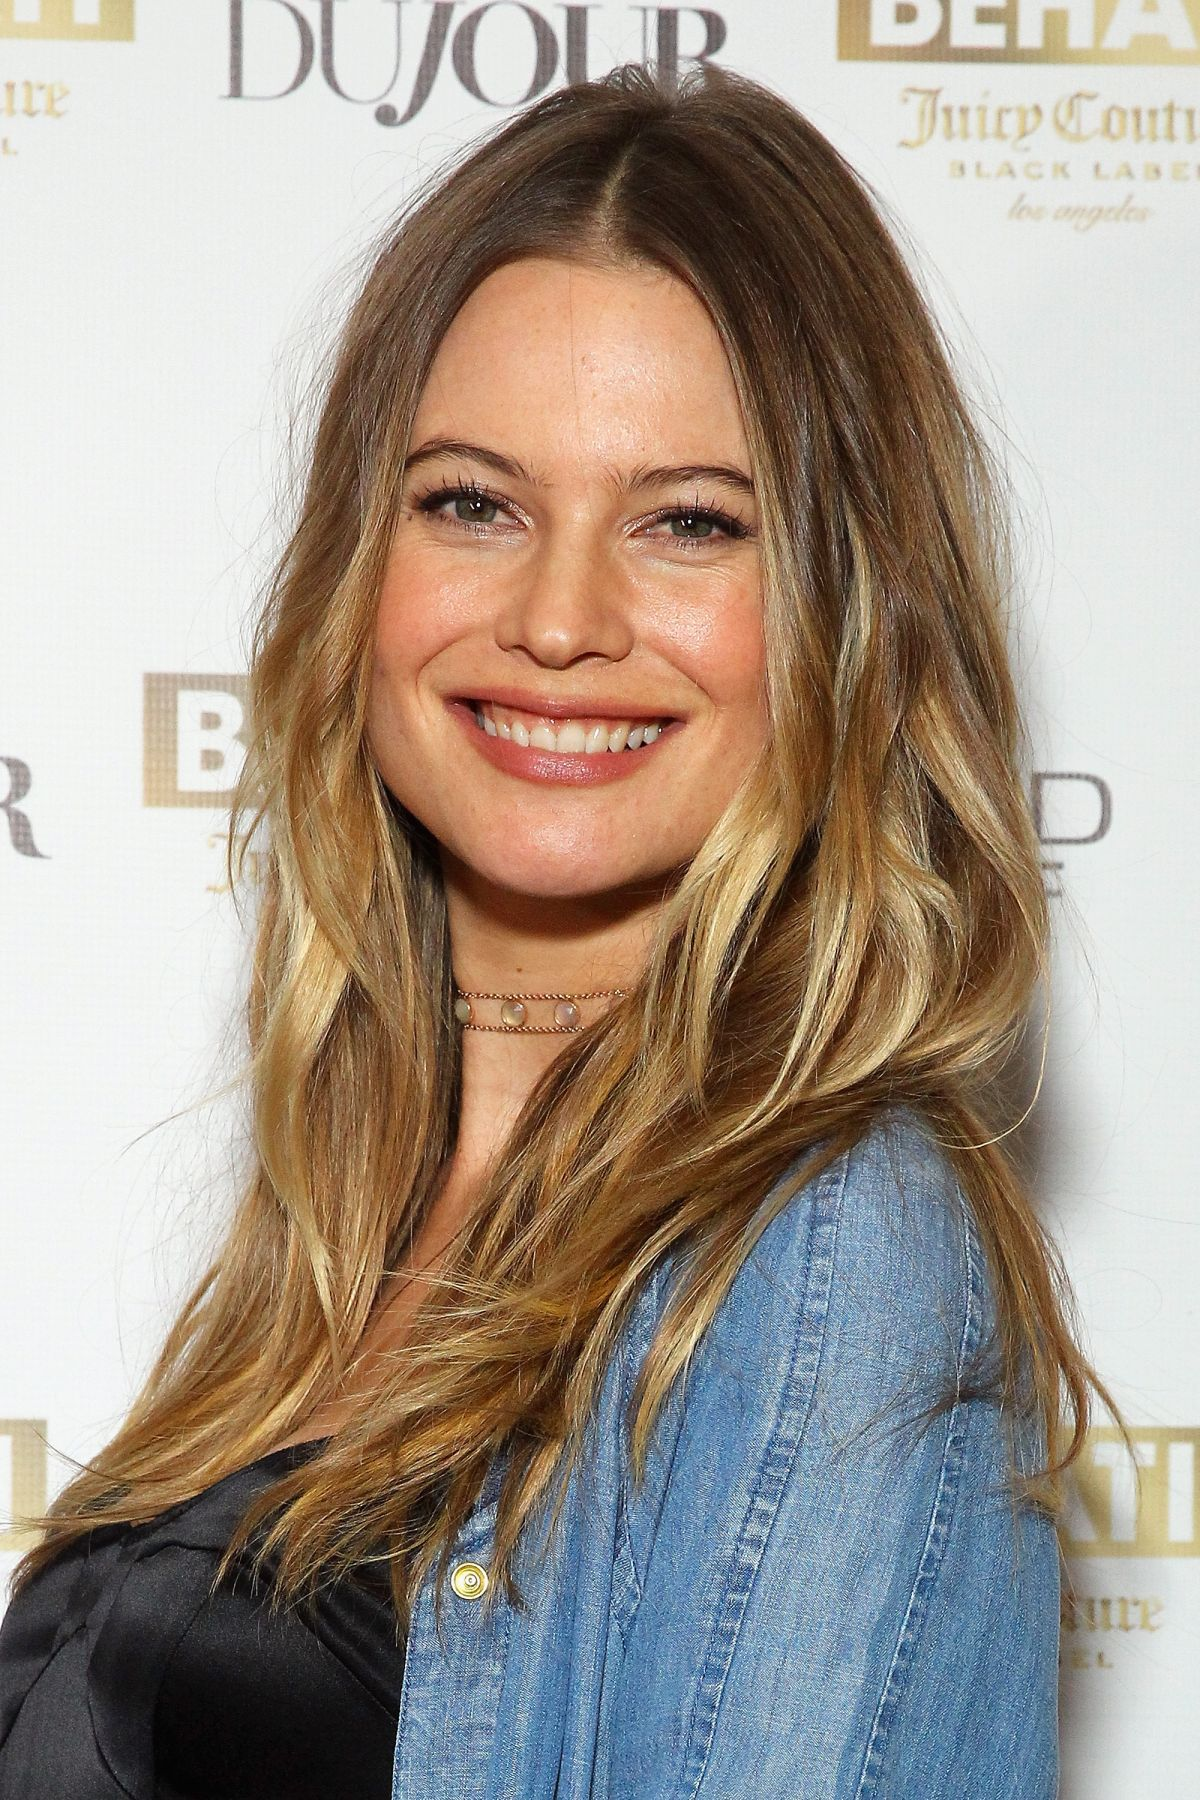 Behati Prinsloo At Behati X Juicy Couture Launch In New